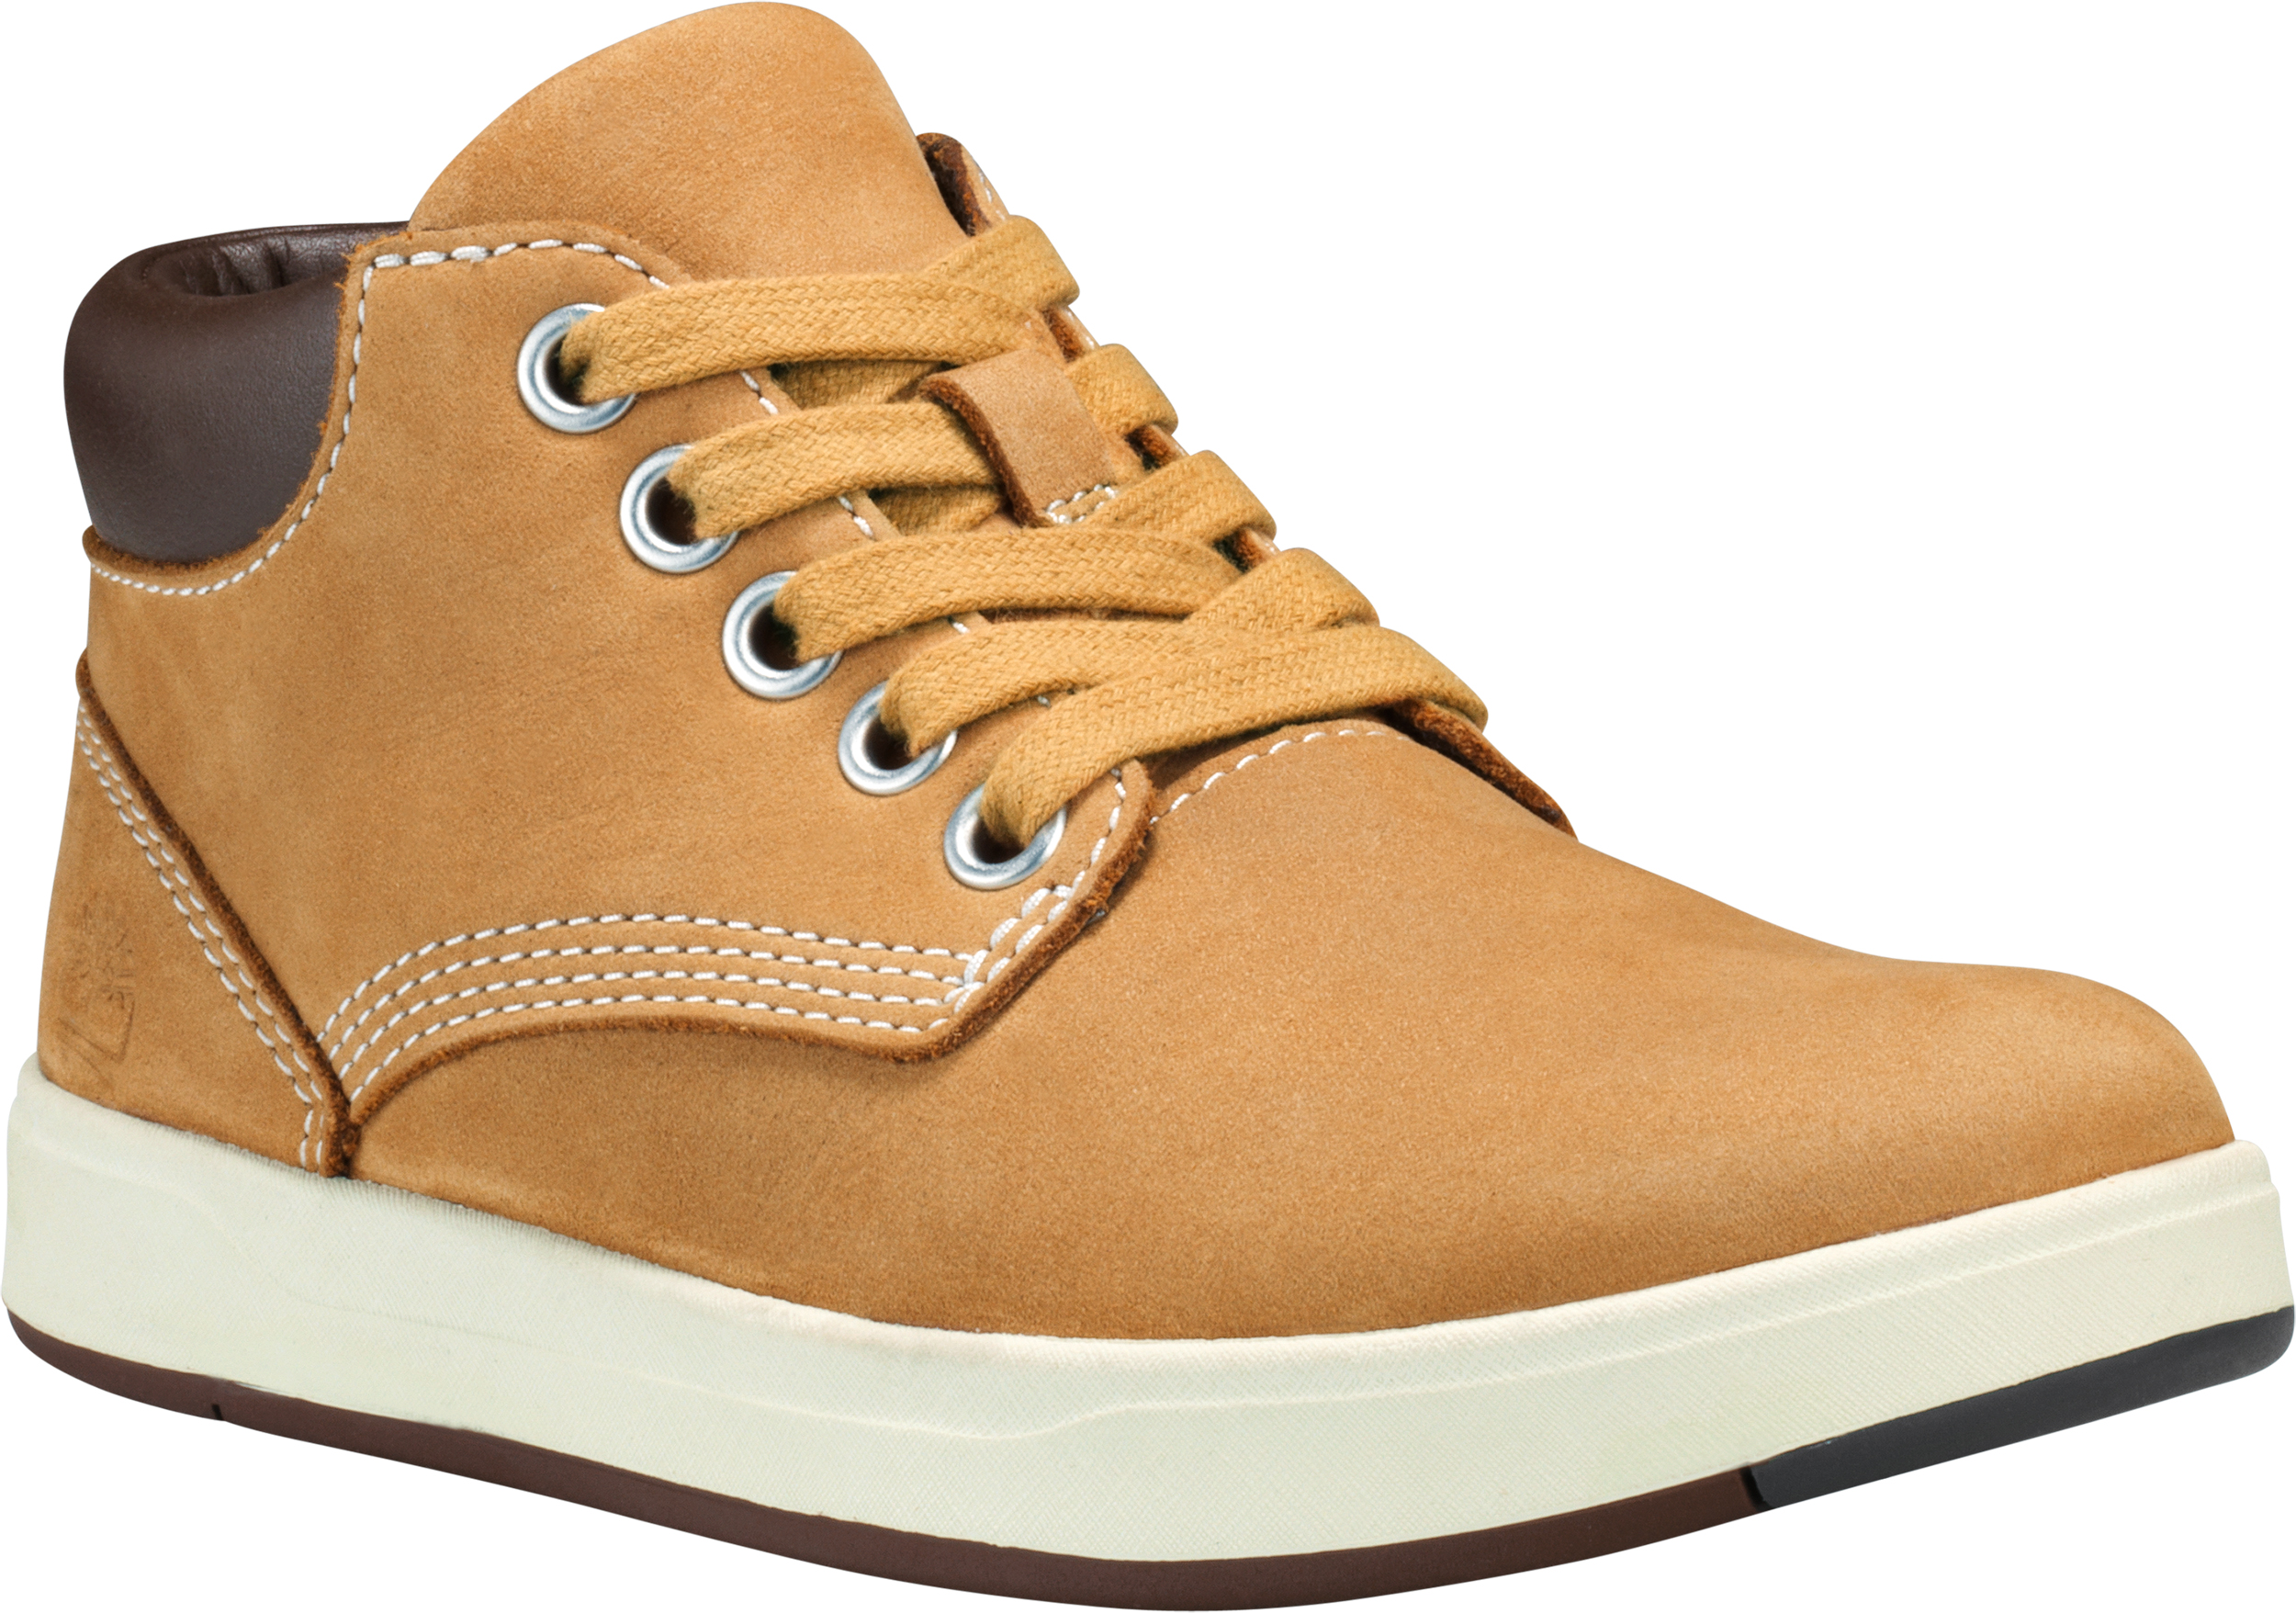 a4083fef456 Timberland Davis Square Leather Chukka - Children to Youths   MEC